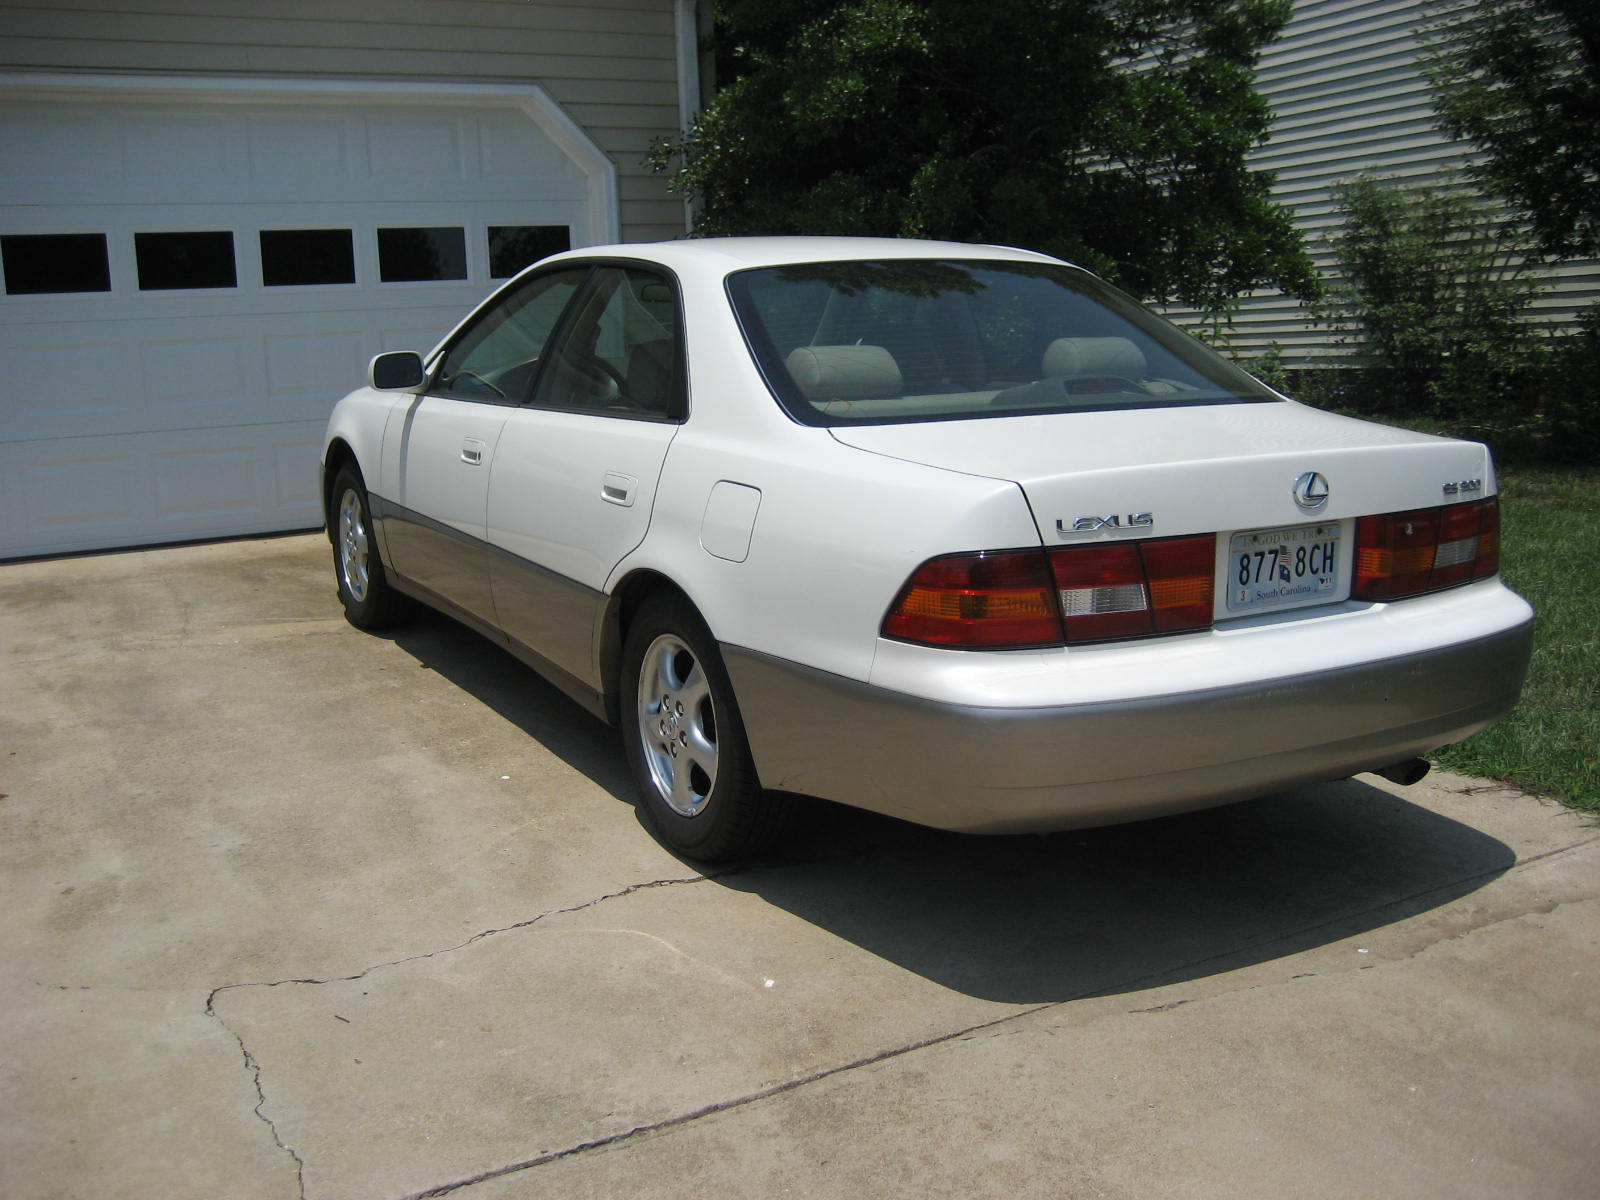 Lexus ES 250 1999 photo - 7